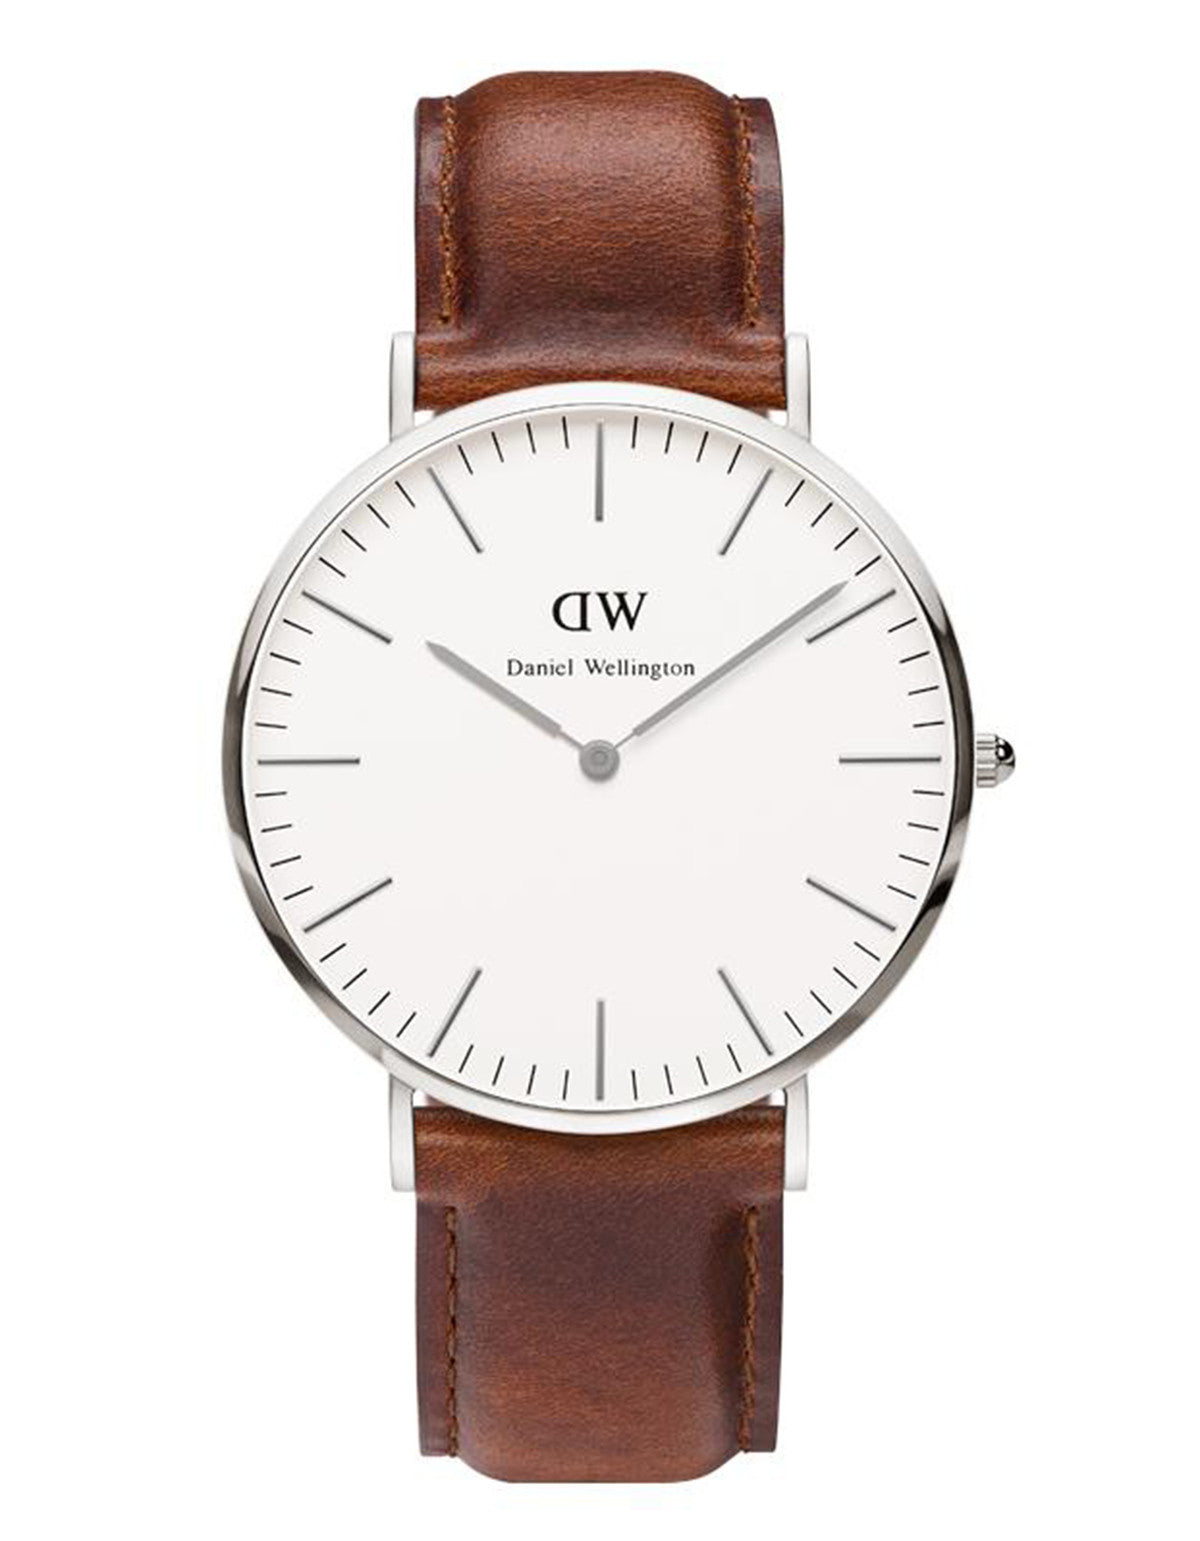 Daniel Wellington St. Andrews Watch Silver 40mm - Still Life - 1